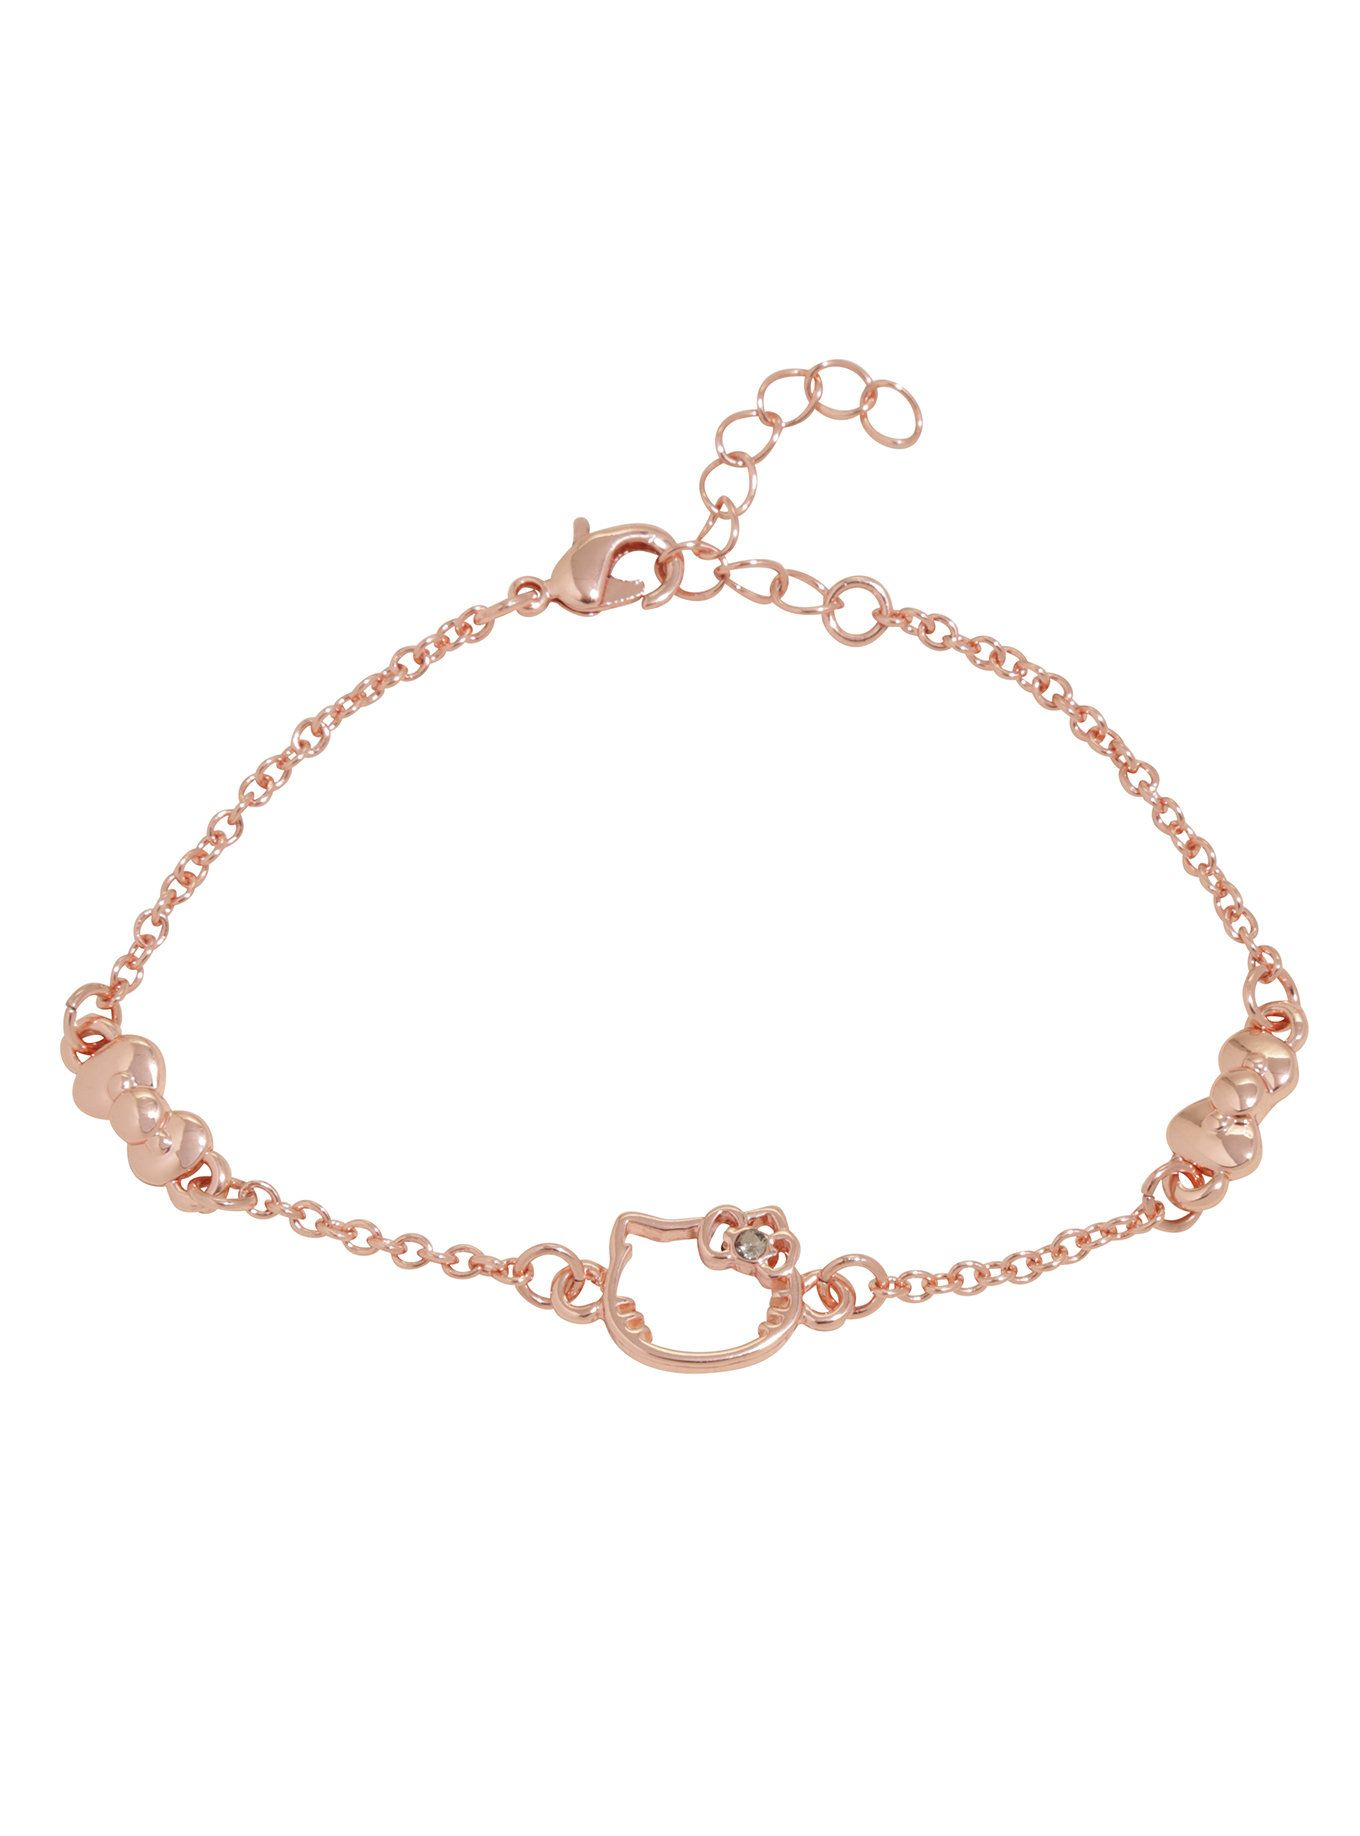 Hello Kitty Rose Gold Dainty Silhouette Bow Bracelet